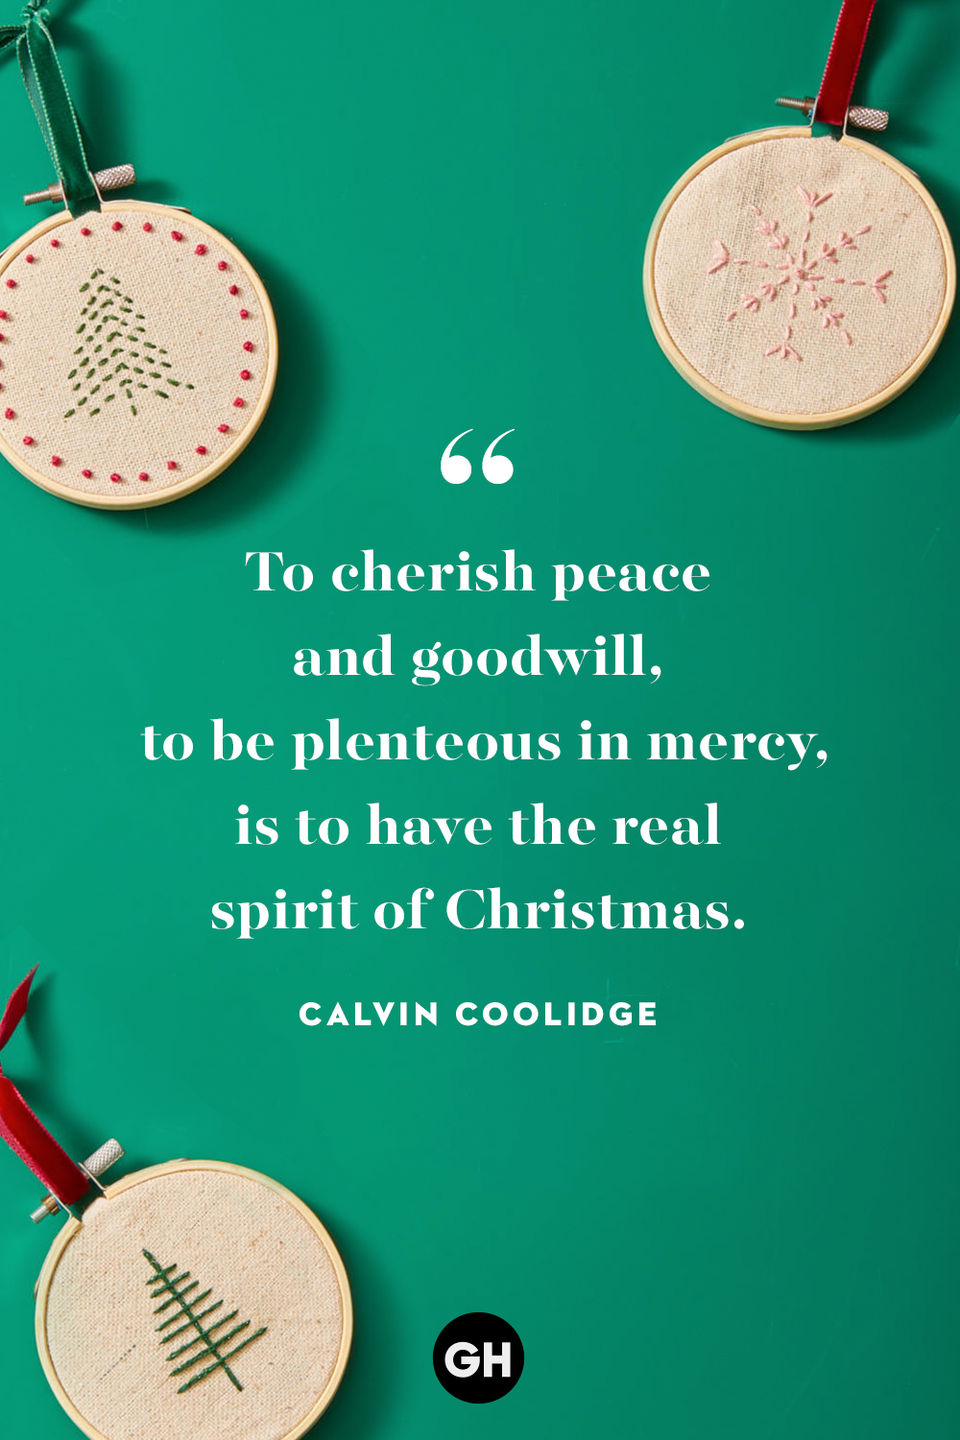 <p>To cherish peace and goodwill, to be plenteous in mercy, is to have the real spirit of Christmas. </p>